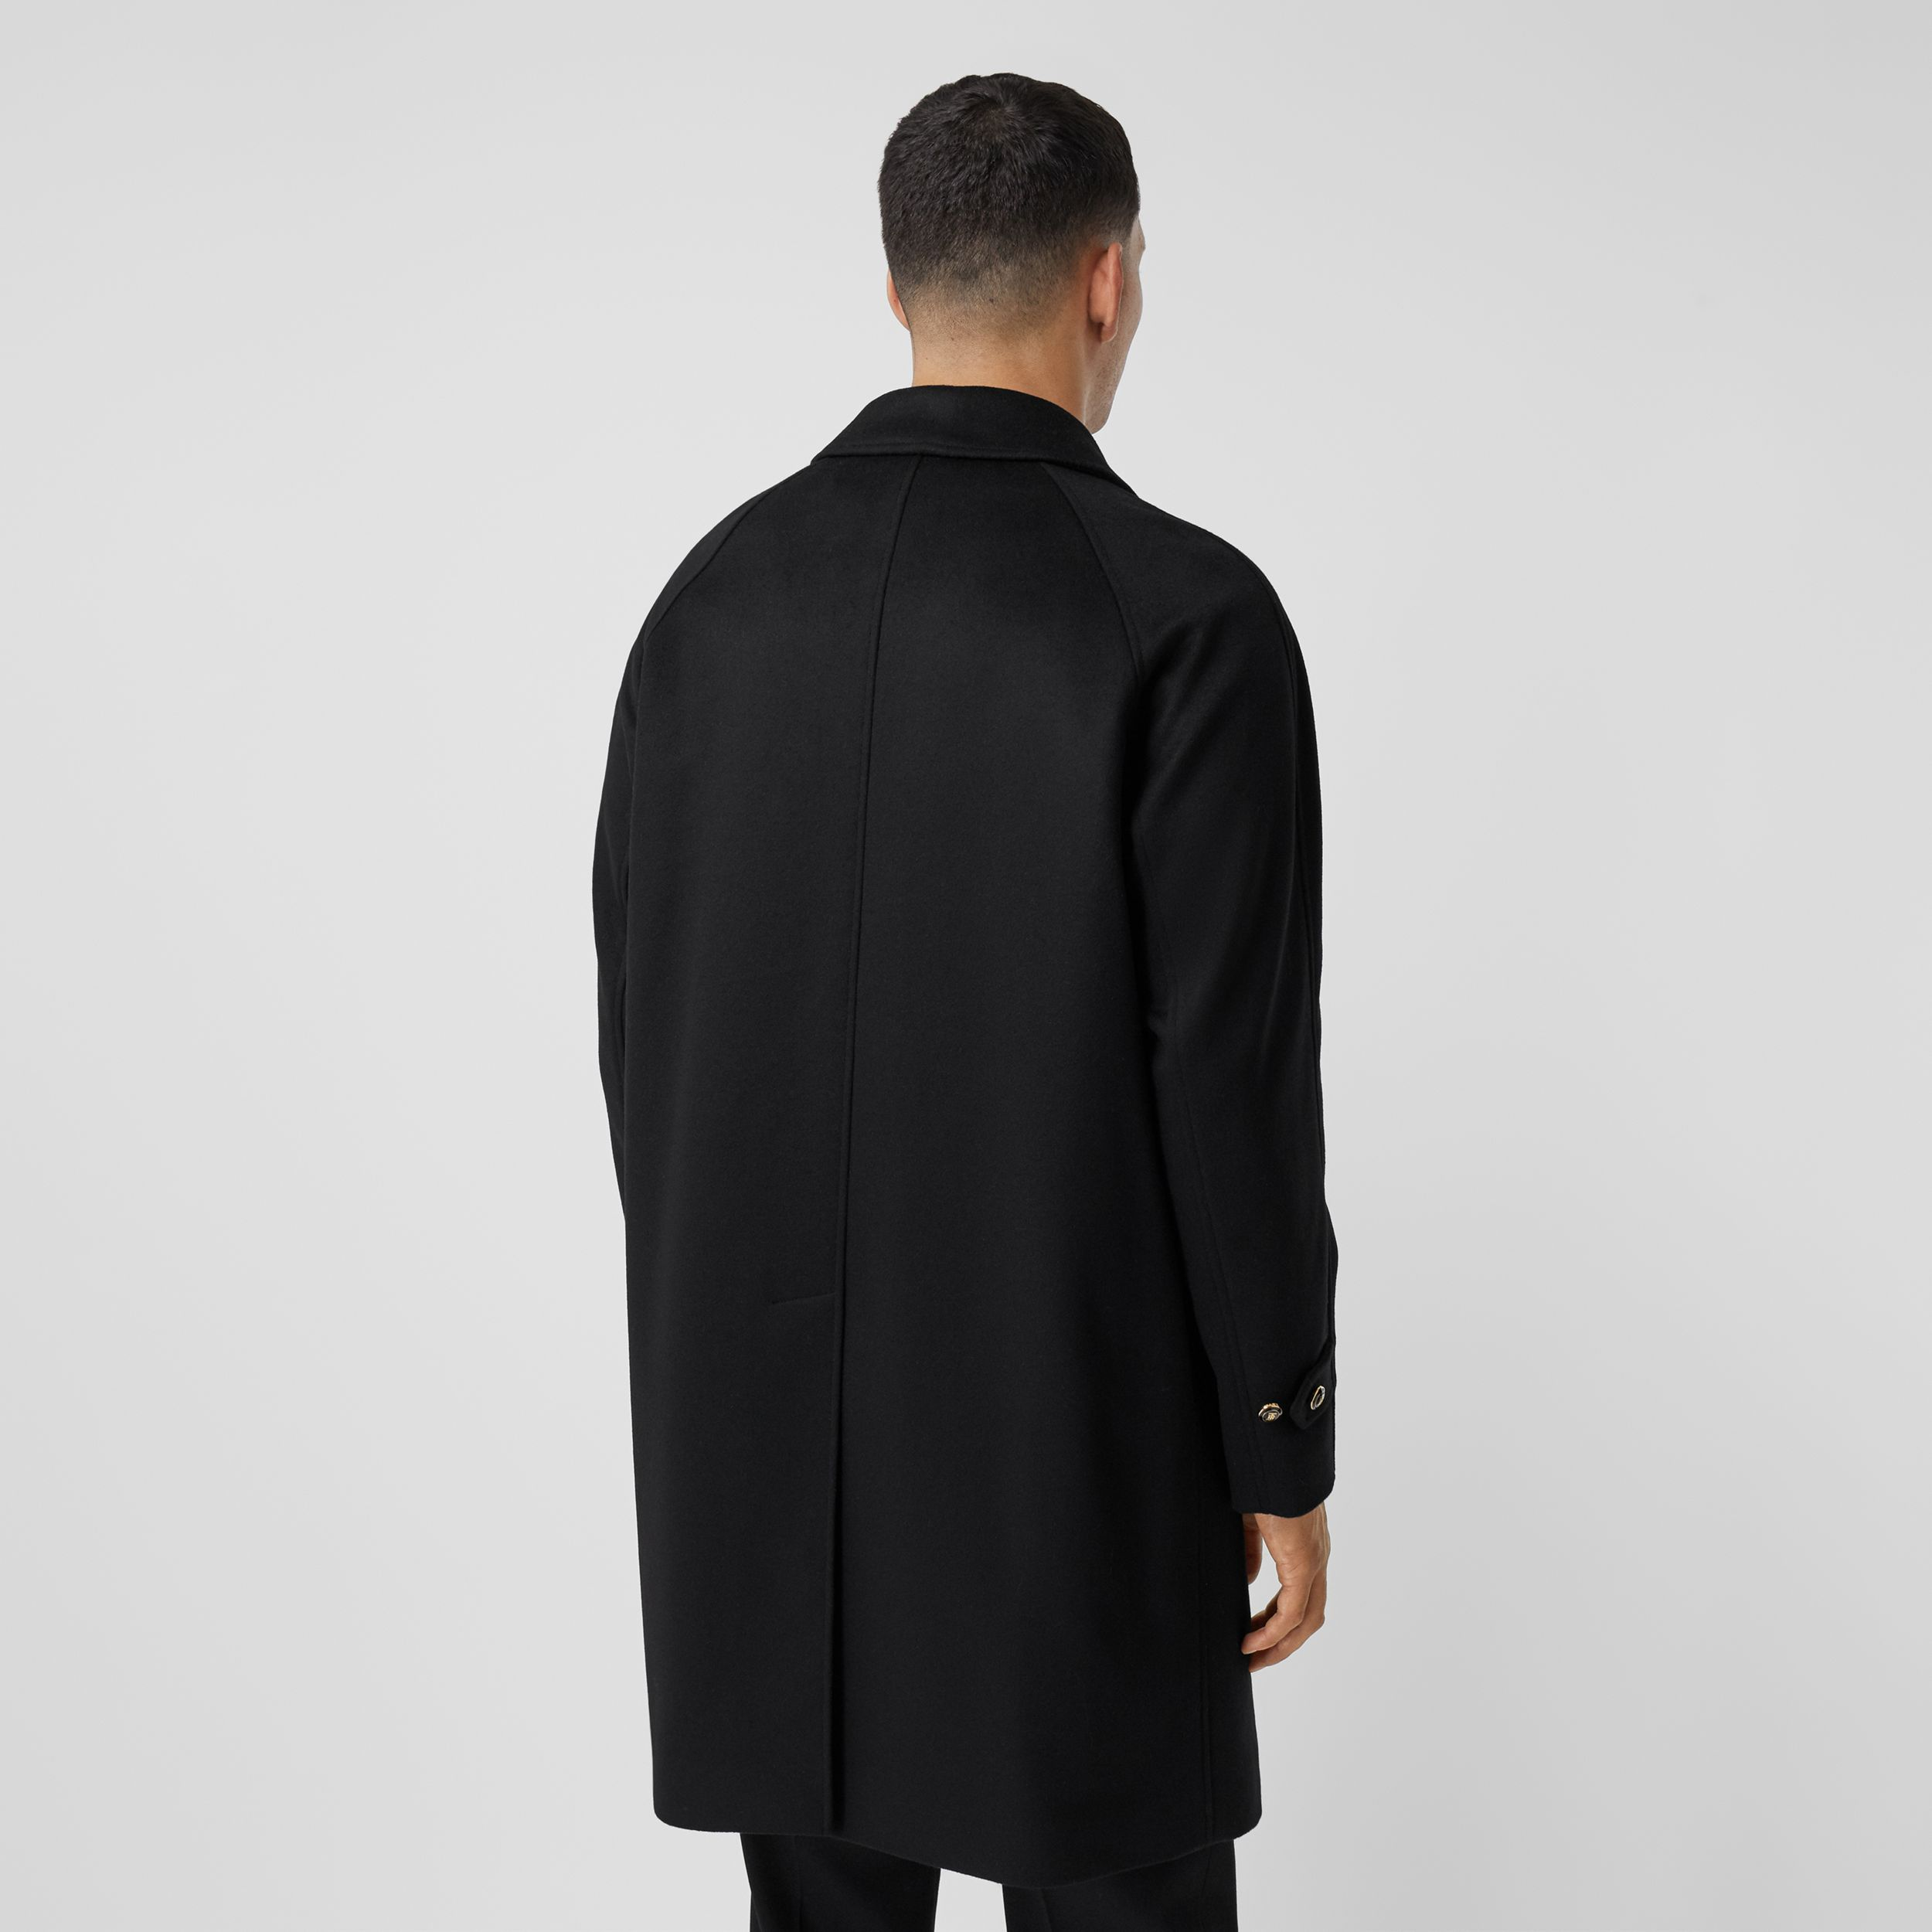 Button Detail Wool Cashmere Car Coat in Black - Men | Burberry - 3